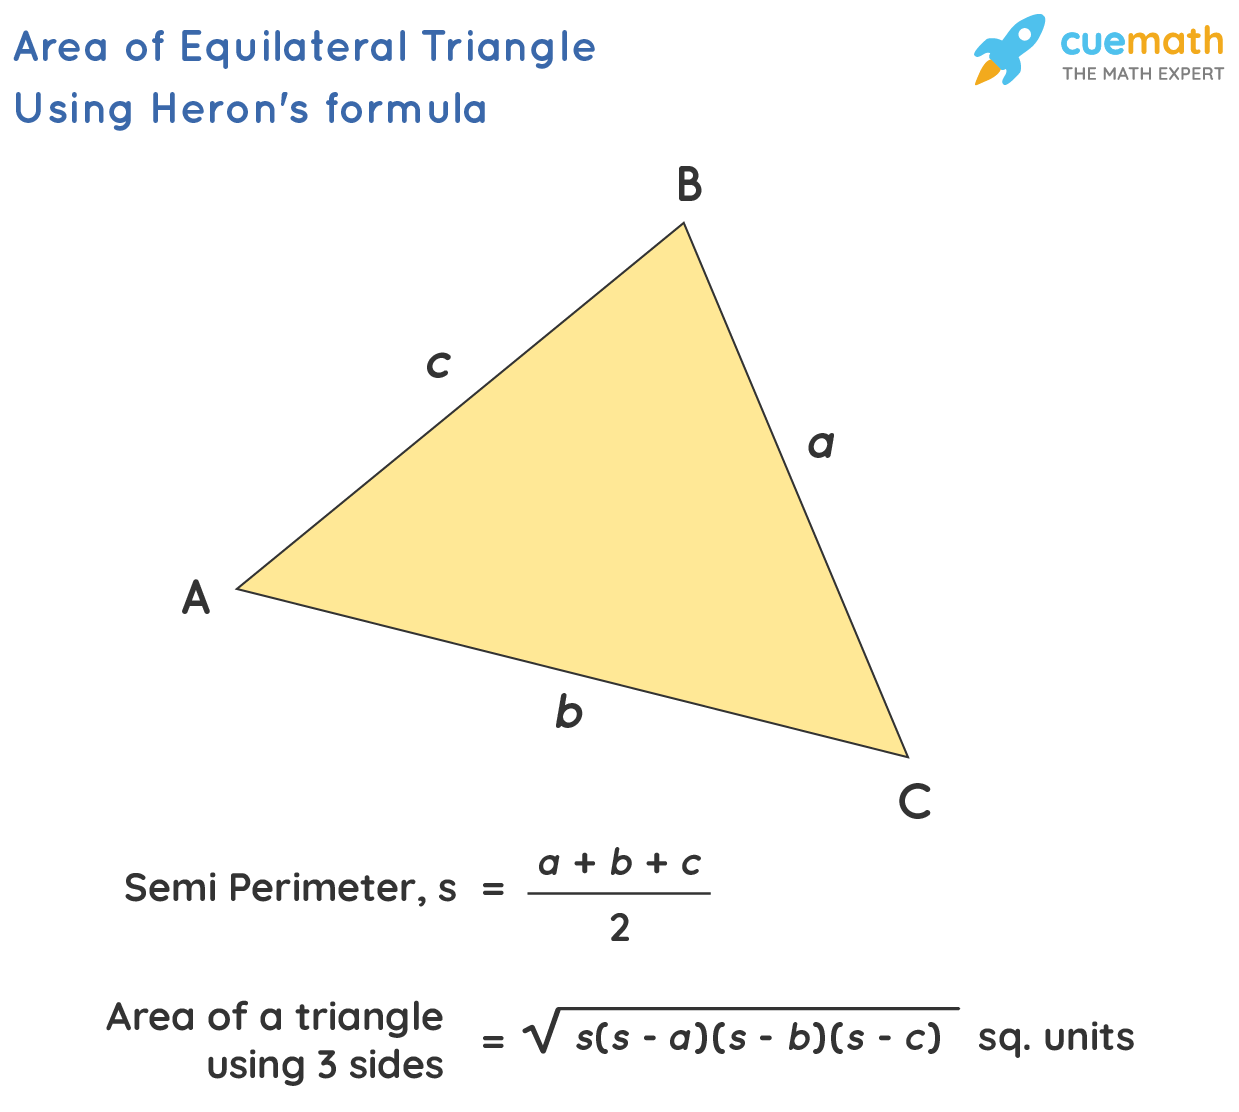 area of triangle by using heron's formula